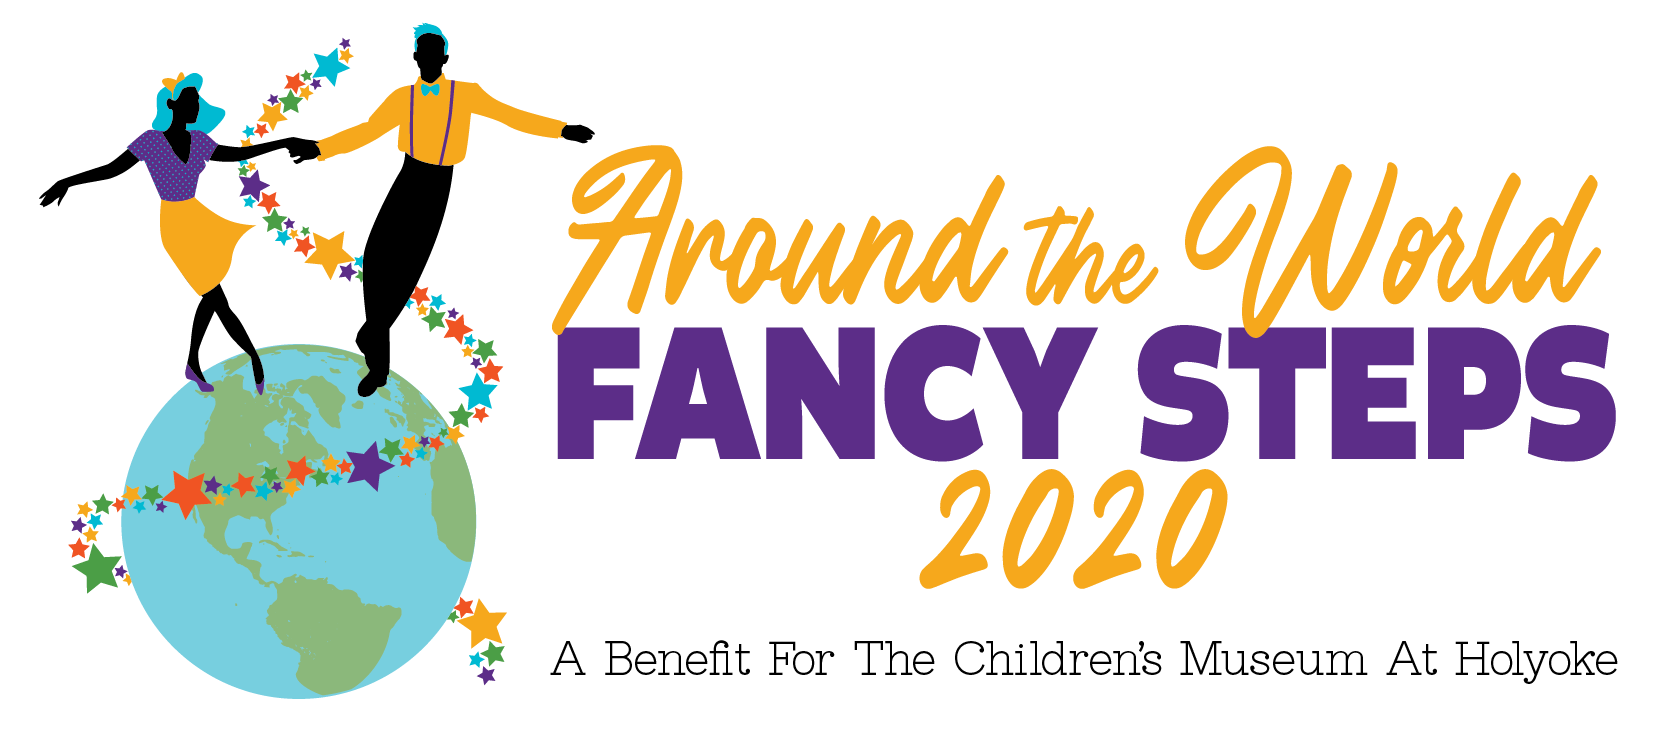 Around The World - Fancy Steps 2020